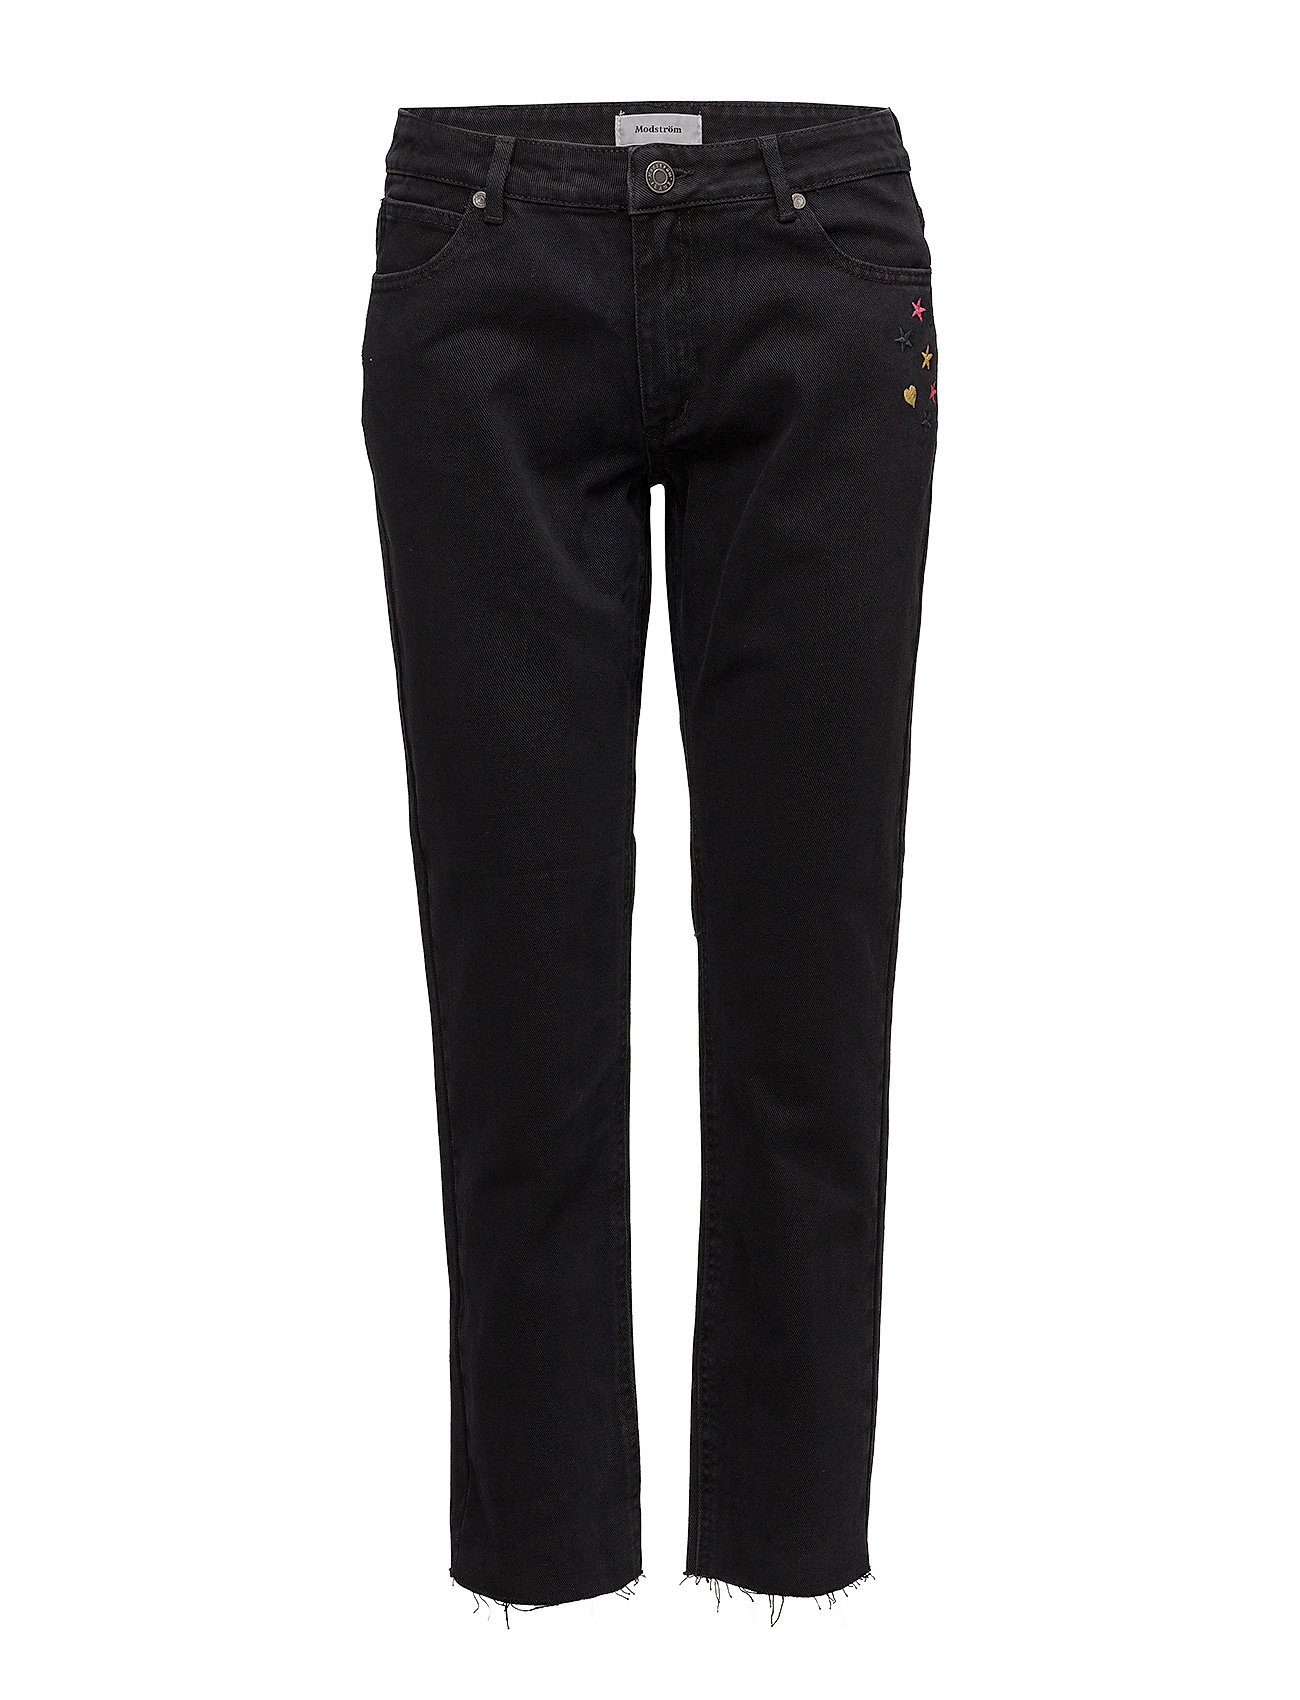 Frenchy Stone Washed Jeans